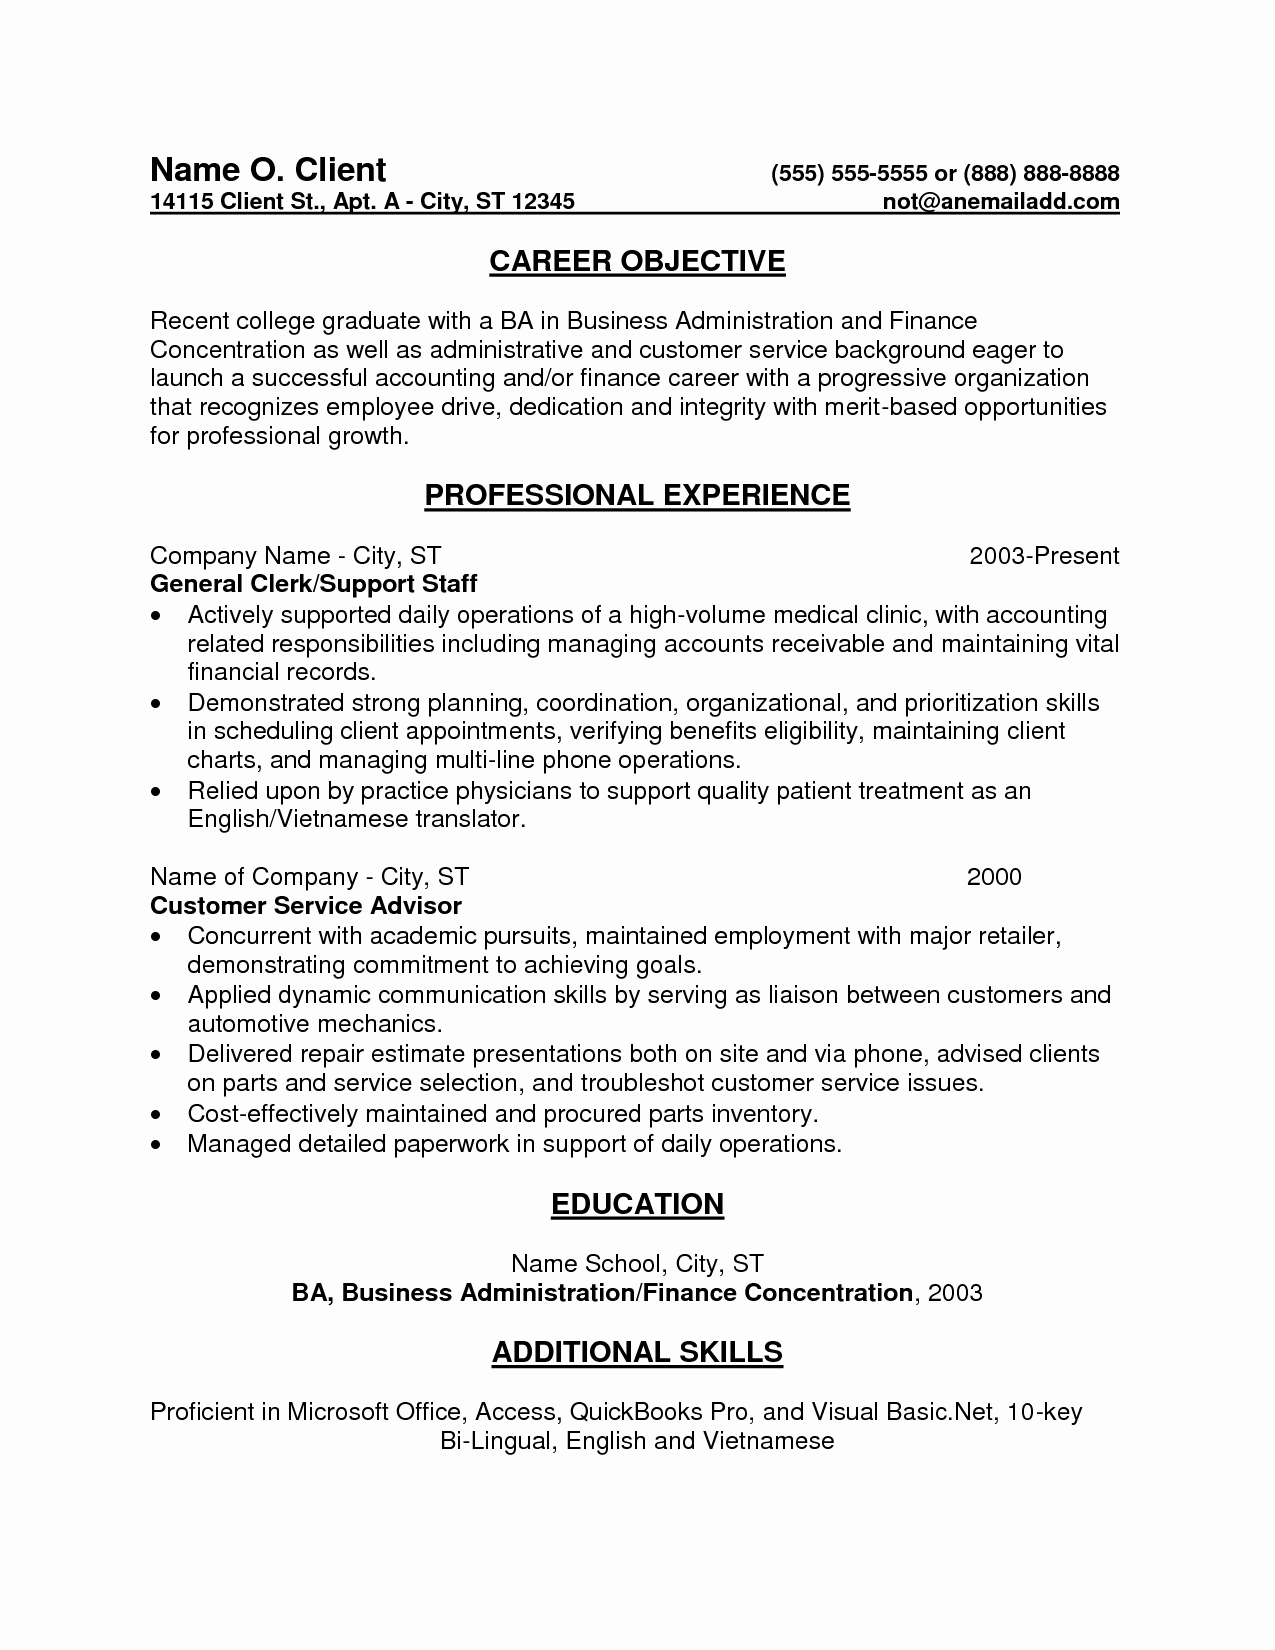 Entry Level Accounting Cover Letter Lovely Resume Objective Entry Level Position Cover Letter Study Professional Job Application Business